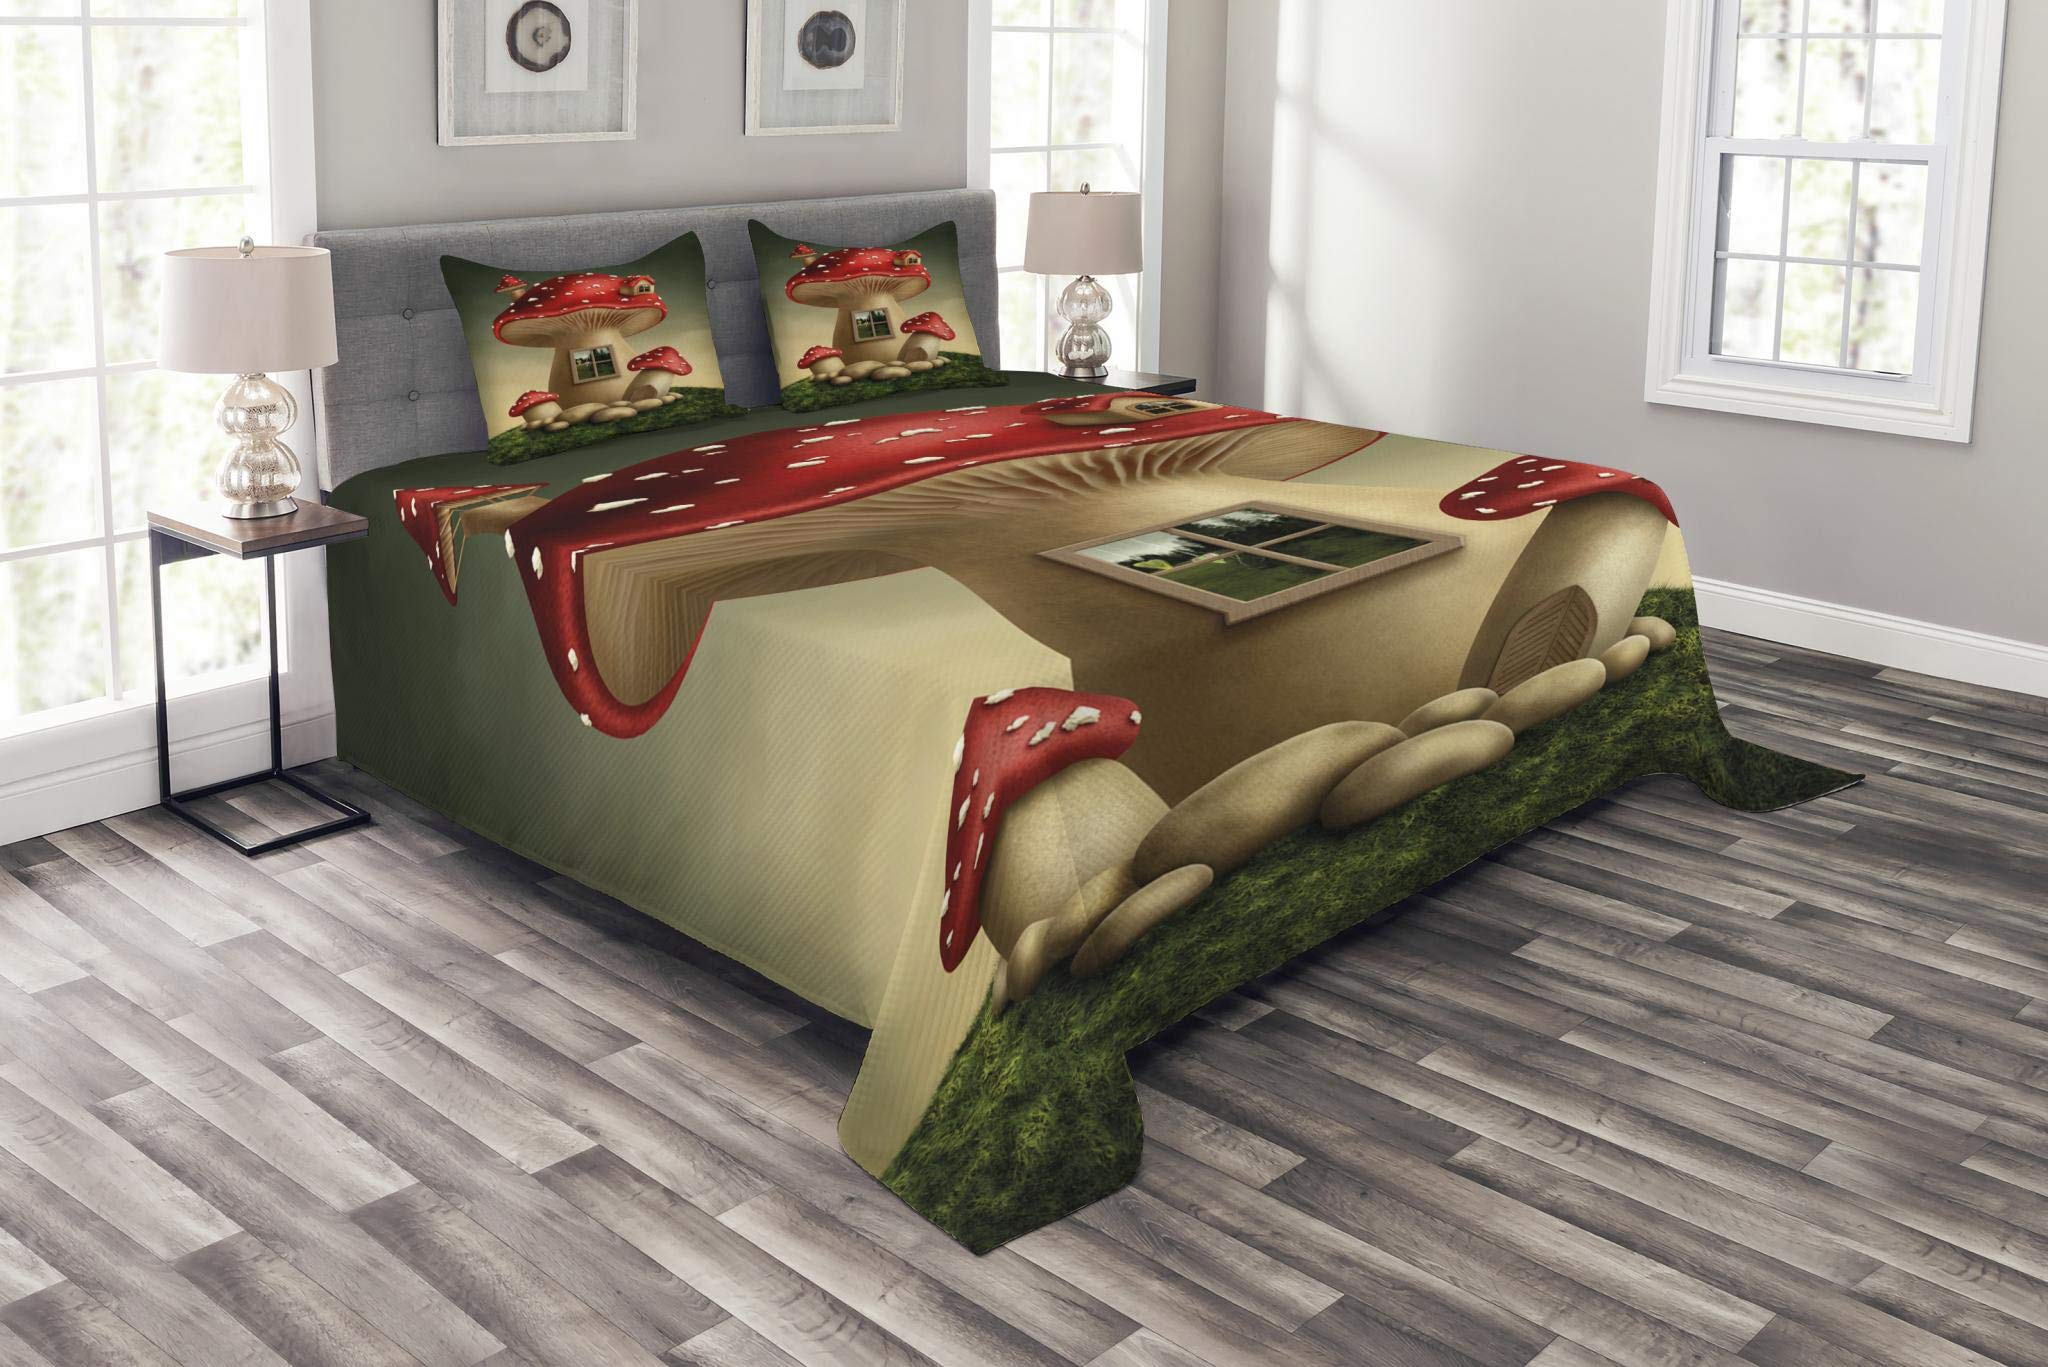 Lunarable Mushroom Bedspread Set Queen Size, Alone Fantasy Mushroom House in Fantasy Forest Cottage Window Surreal, Decorative Quilted 3 Piece Coverlet Set with 2 Pillow Shams, Pale Brown Green Red